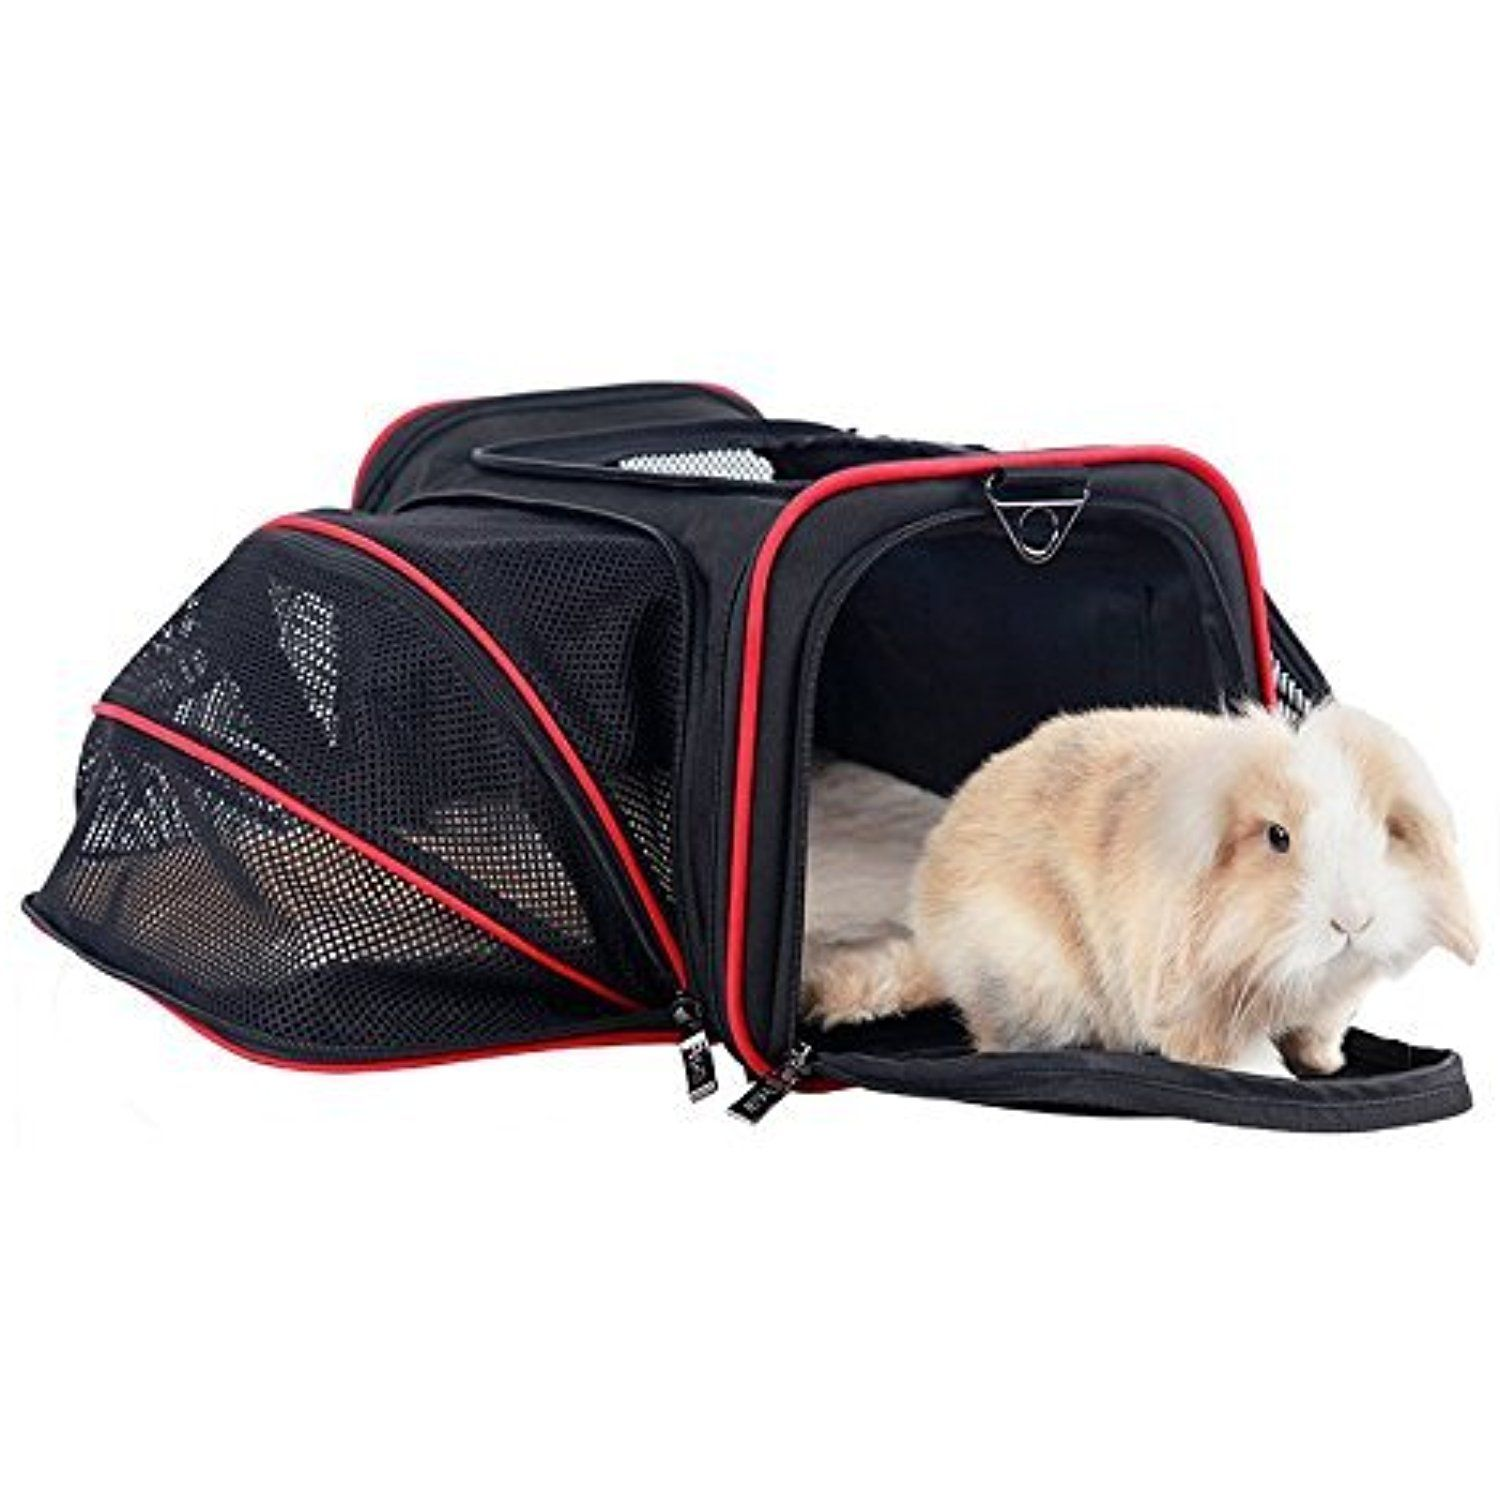 Airline Approved Expandable Pet Carrier By Pet Peppy Two Side Expansion Designed For Cats Dogs Kittens Puppies Dog Travel Bag Pet Carriers Cat Carrier Bag